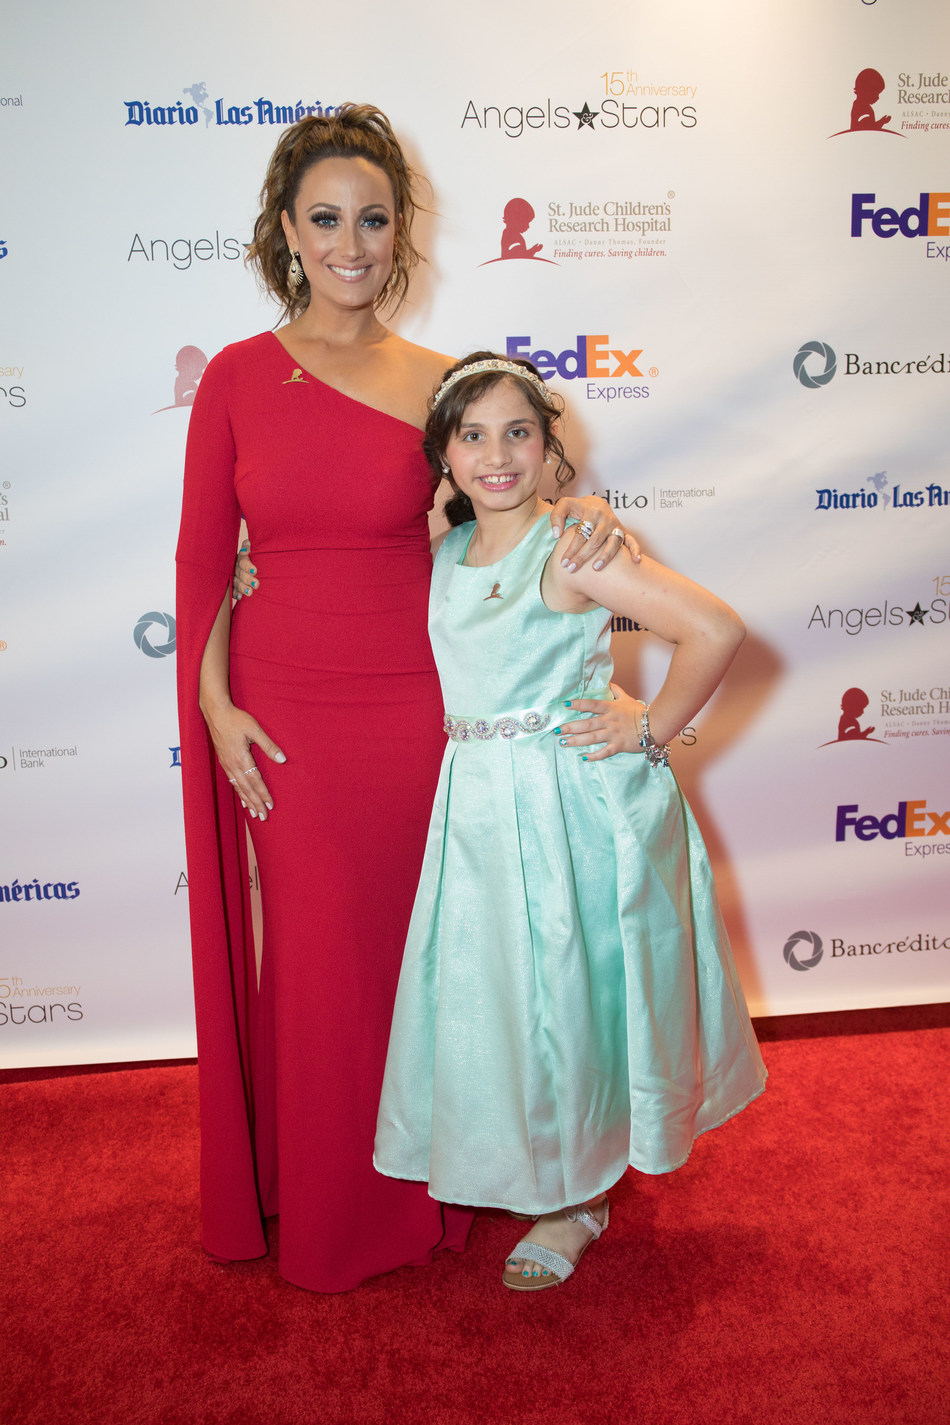 Karla Monroig with St. Jude patient Victoria on the red carpet at the 15th annual FedEx St. Jude Angels & Stars Miami Gala